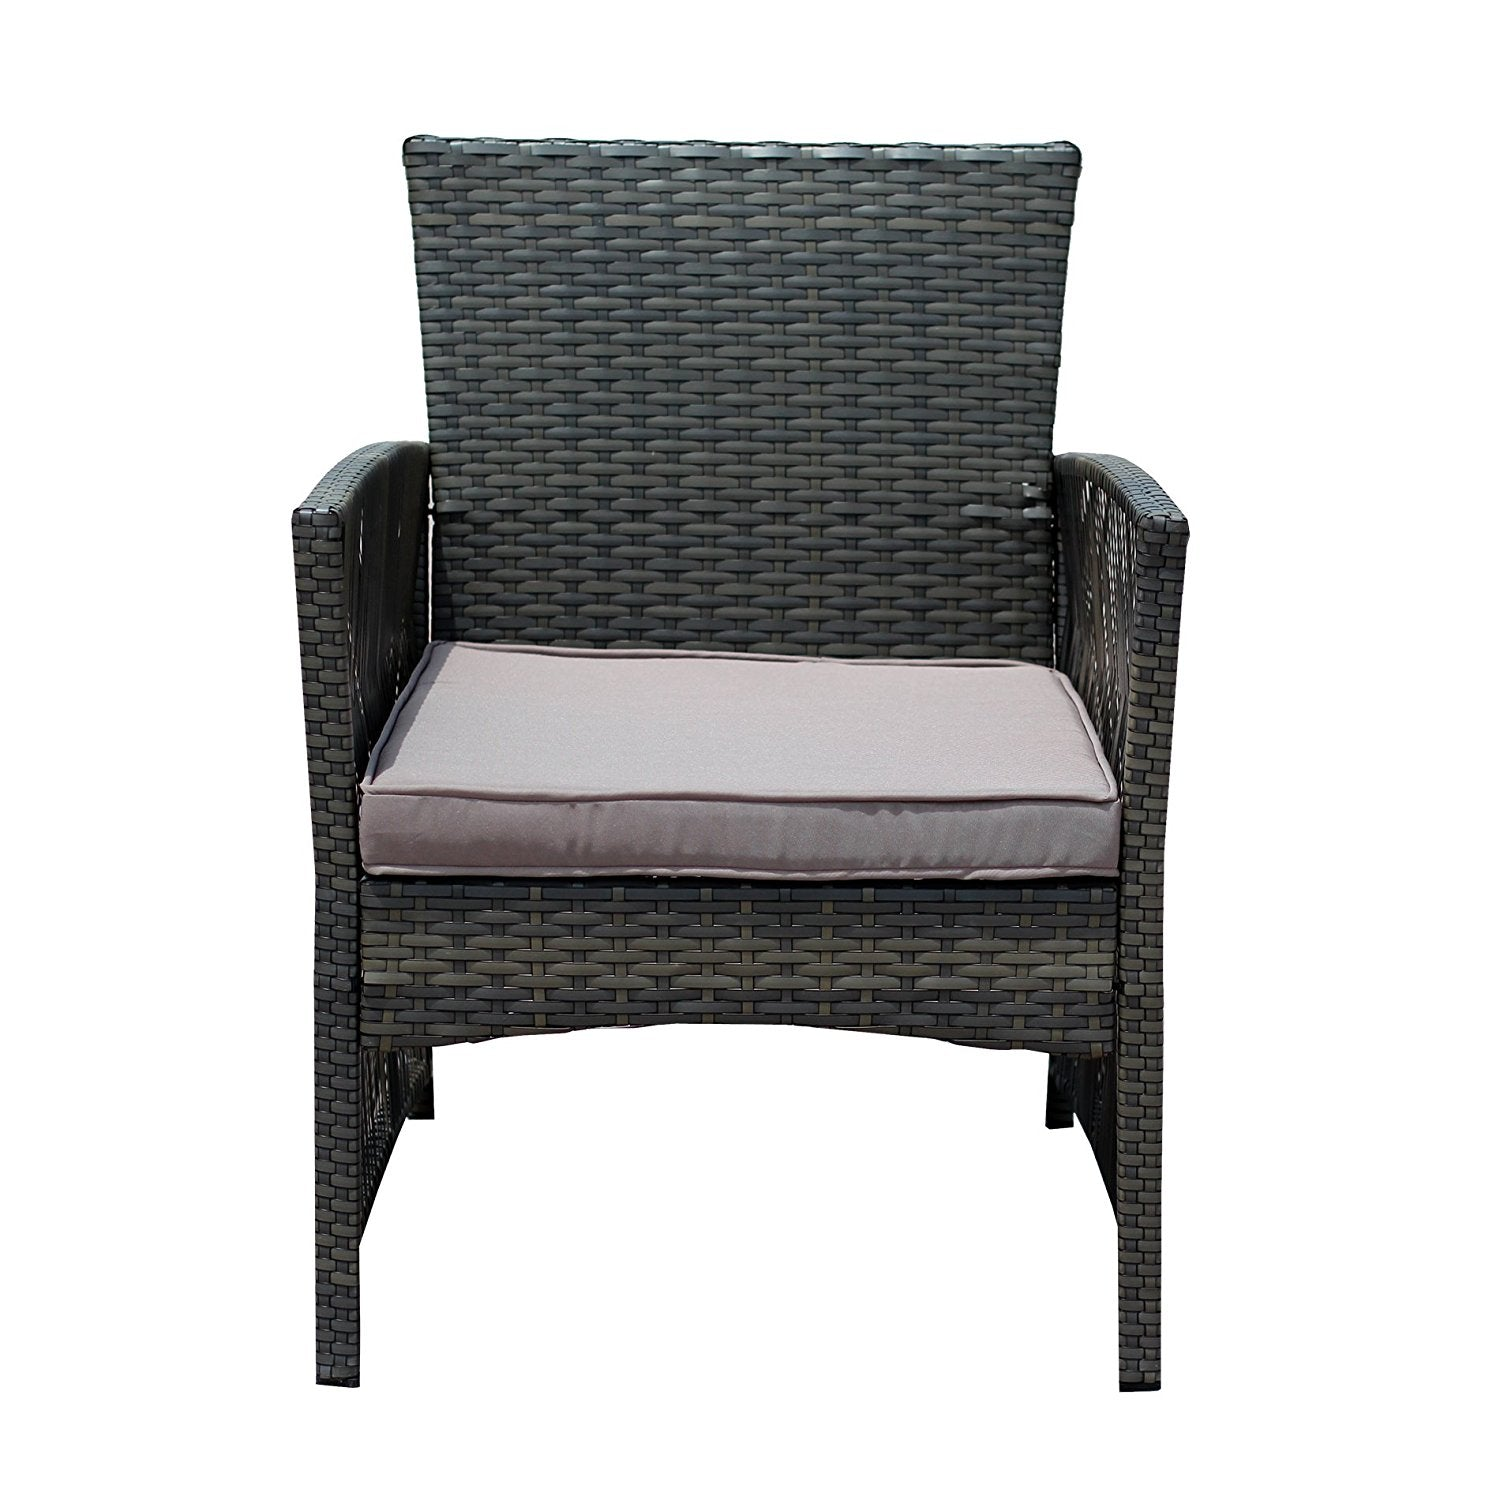 buy rattan wicker coffee table garden patio furniture set at ids